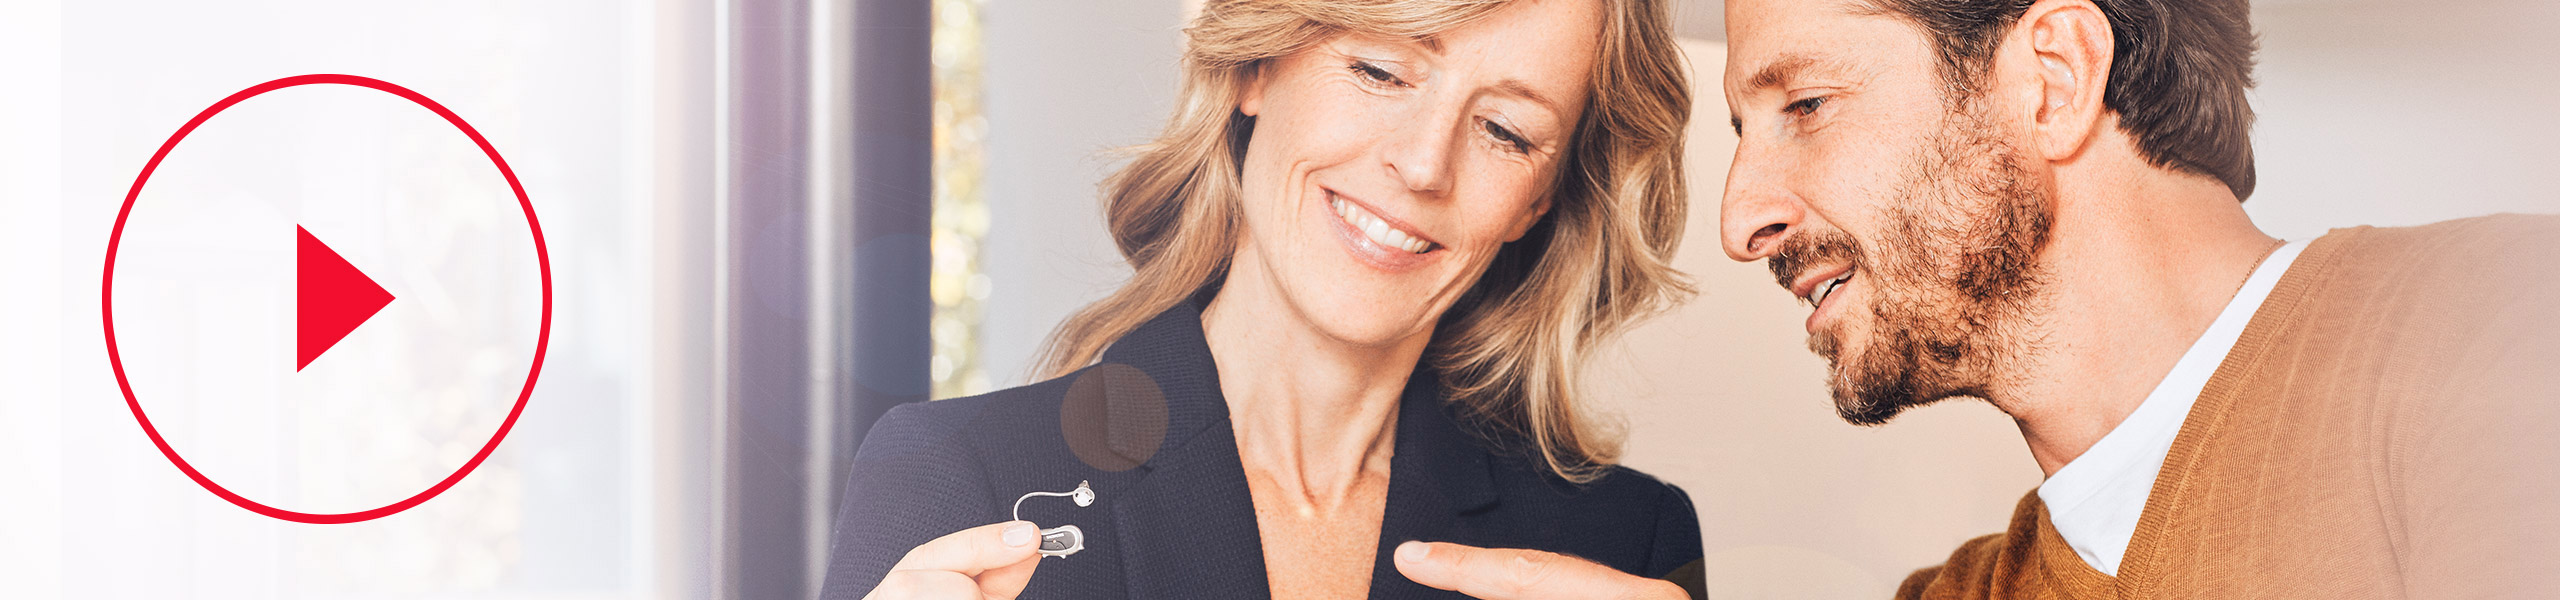 Learn how to maintain your hearing aids and how to handle apps and accessories.